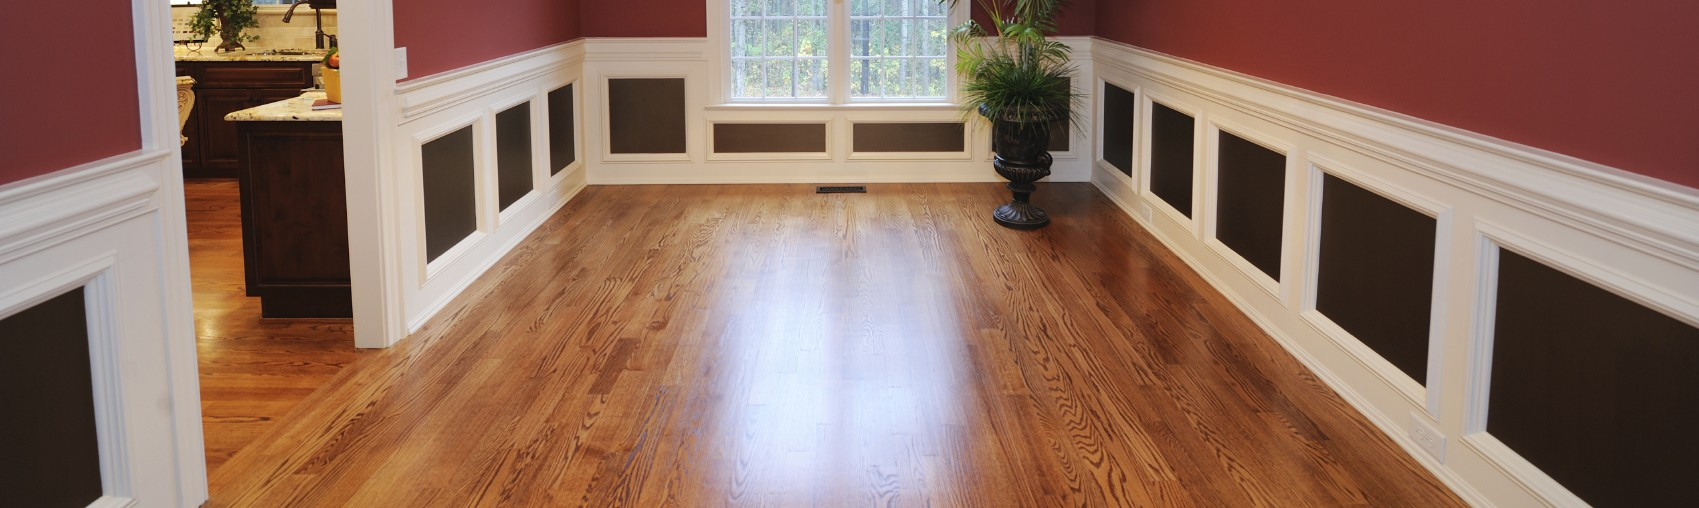 Hardwood Floor Refinishing Marietta Ga